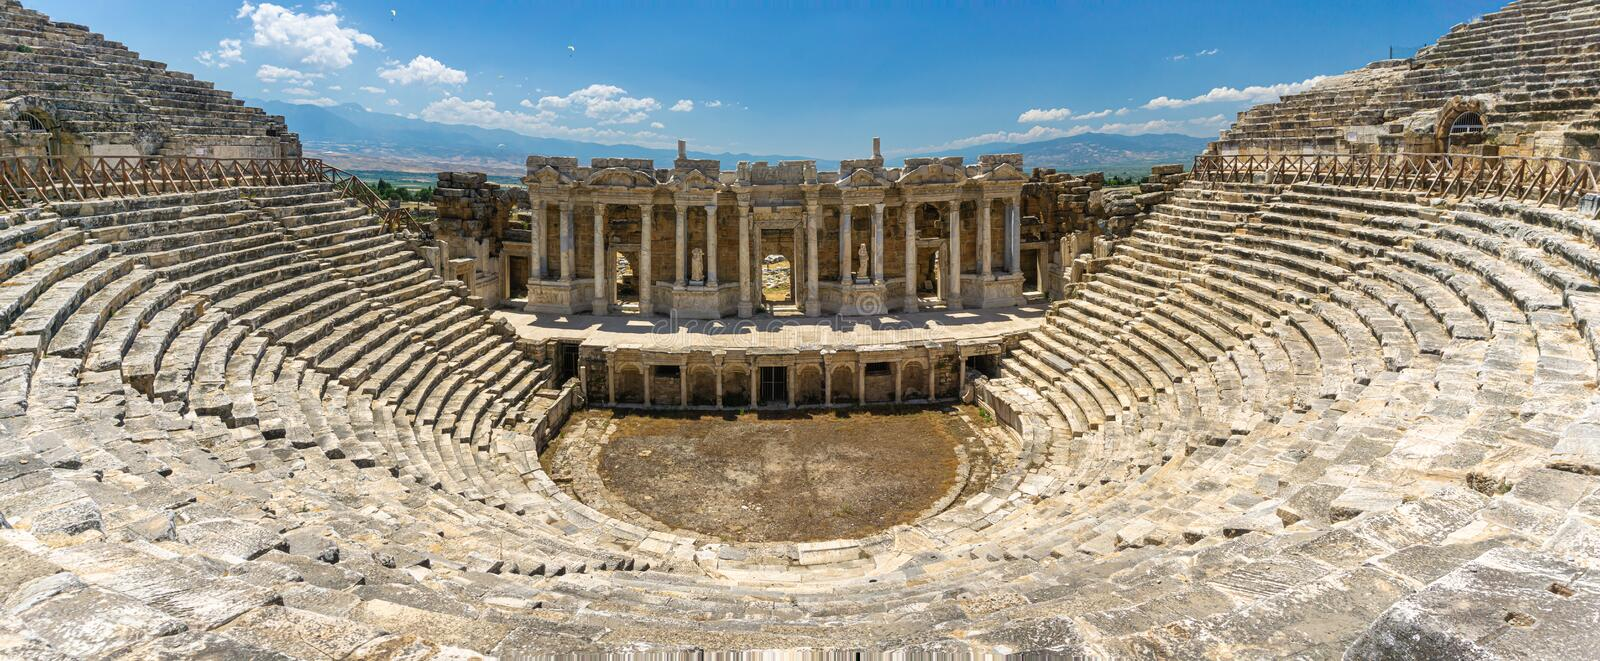 Vue panoramique de théâtre de ville antique de Hierapolis, Denizli, Turquie Th??tre romain photos stock